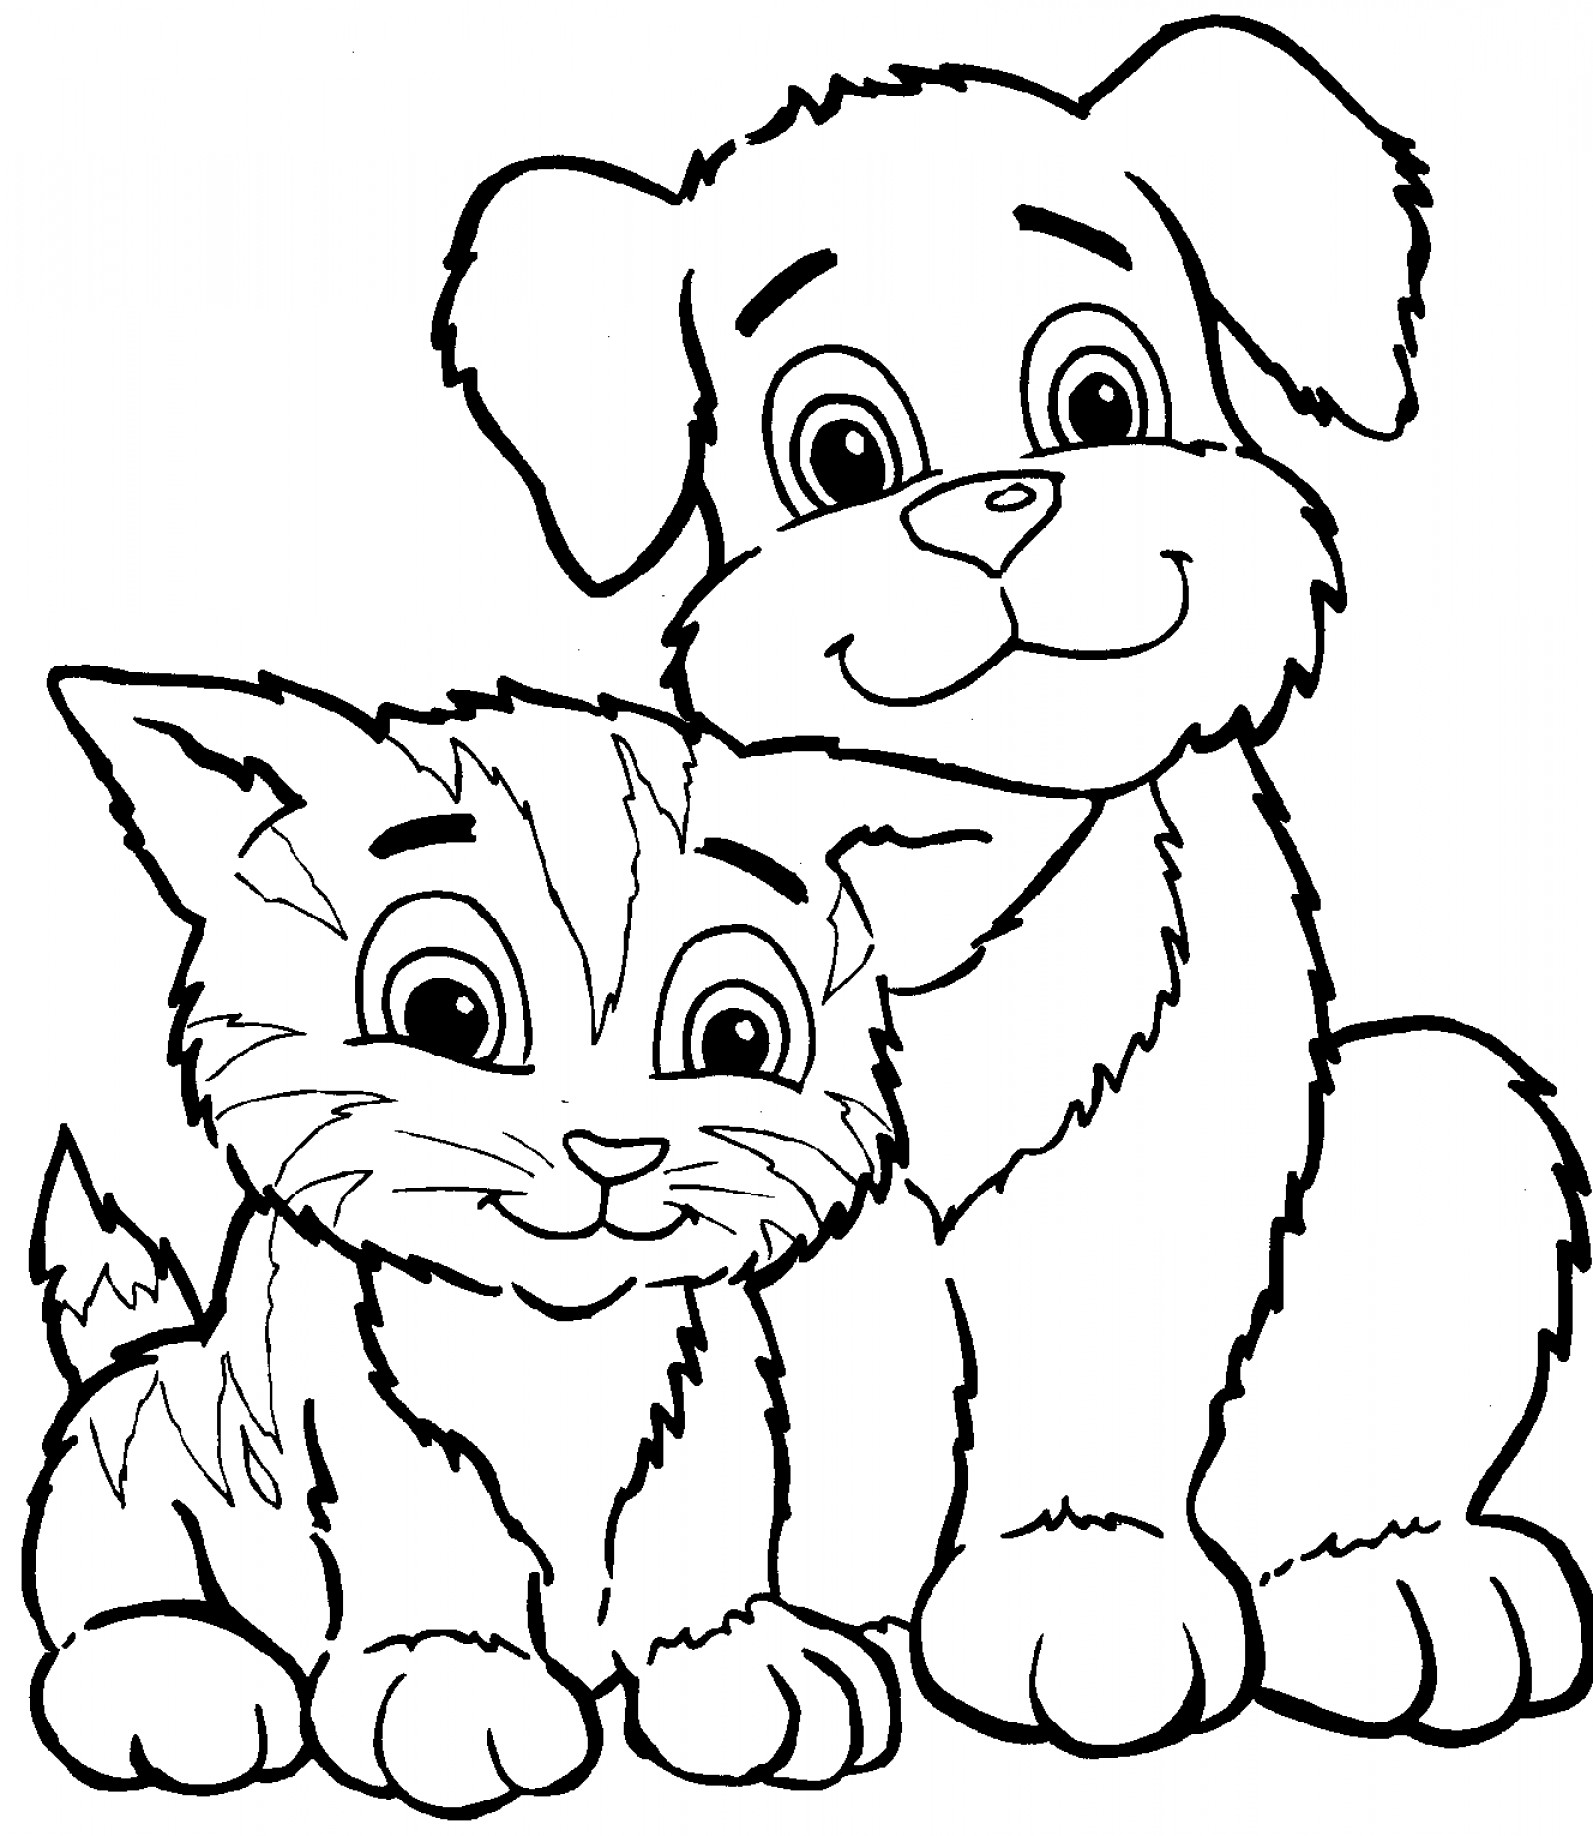 Dog and cat scenery clipart black and white svg transparent Dog And Cat Clipart Black And White (100+ images in Collection) Page 1 svg transparent